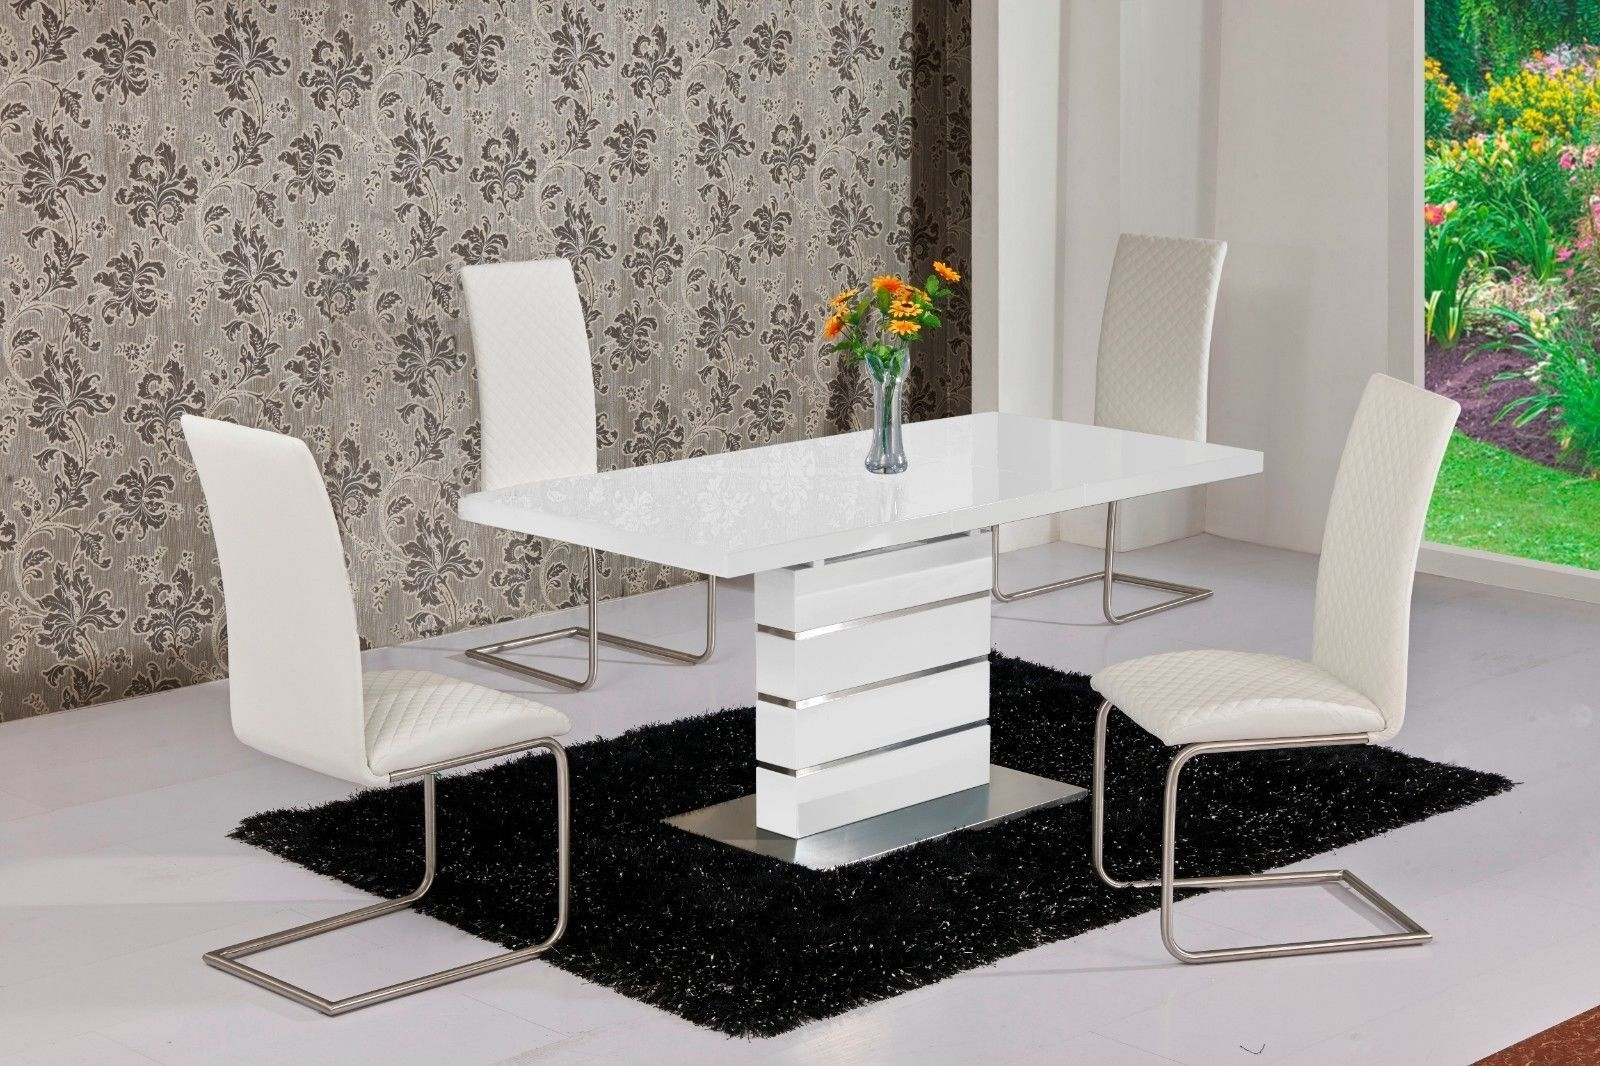 Widely Used White Dining Tables And Chairs Intended For Mace High Gloss Extending 120 160 Dining Table & Chair Set – White (View 5 of 25)